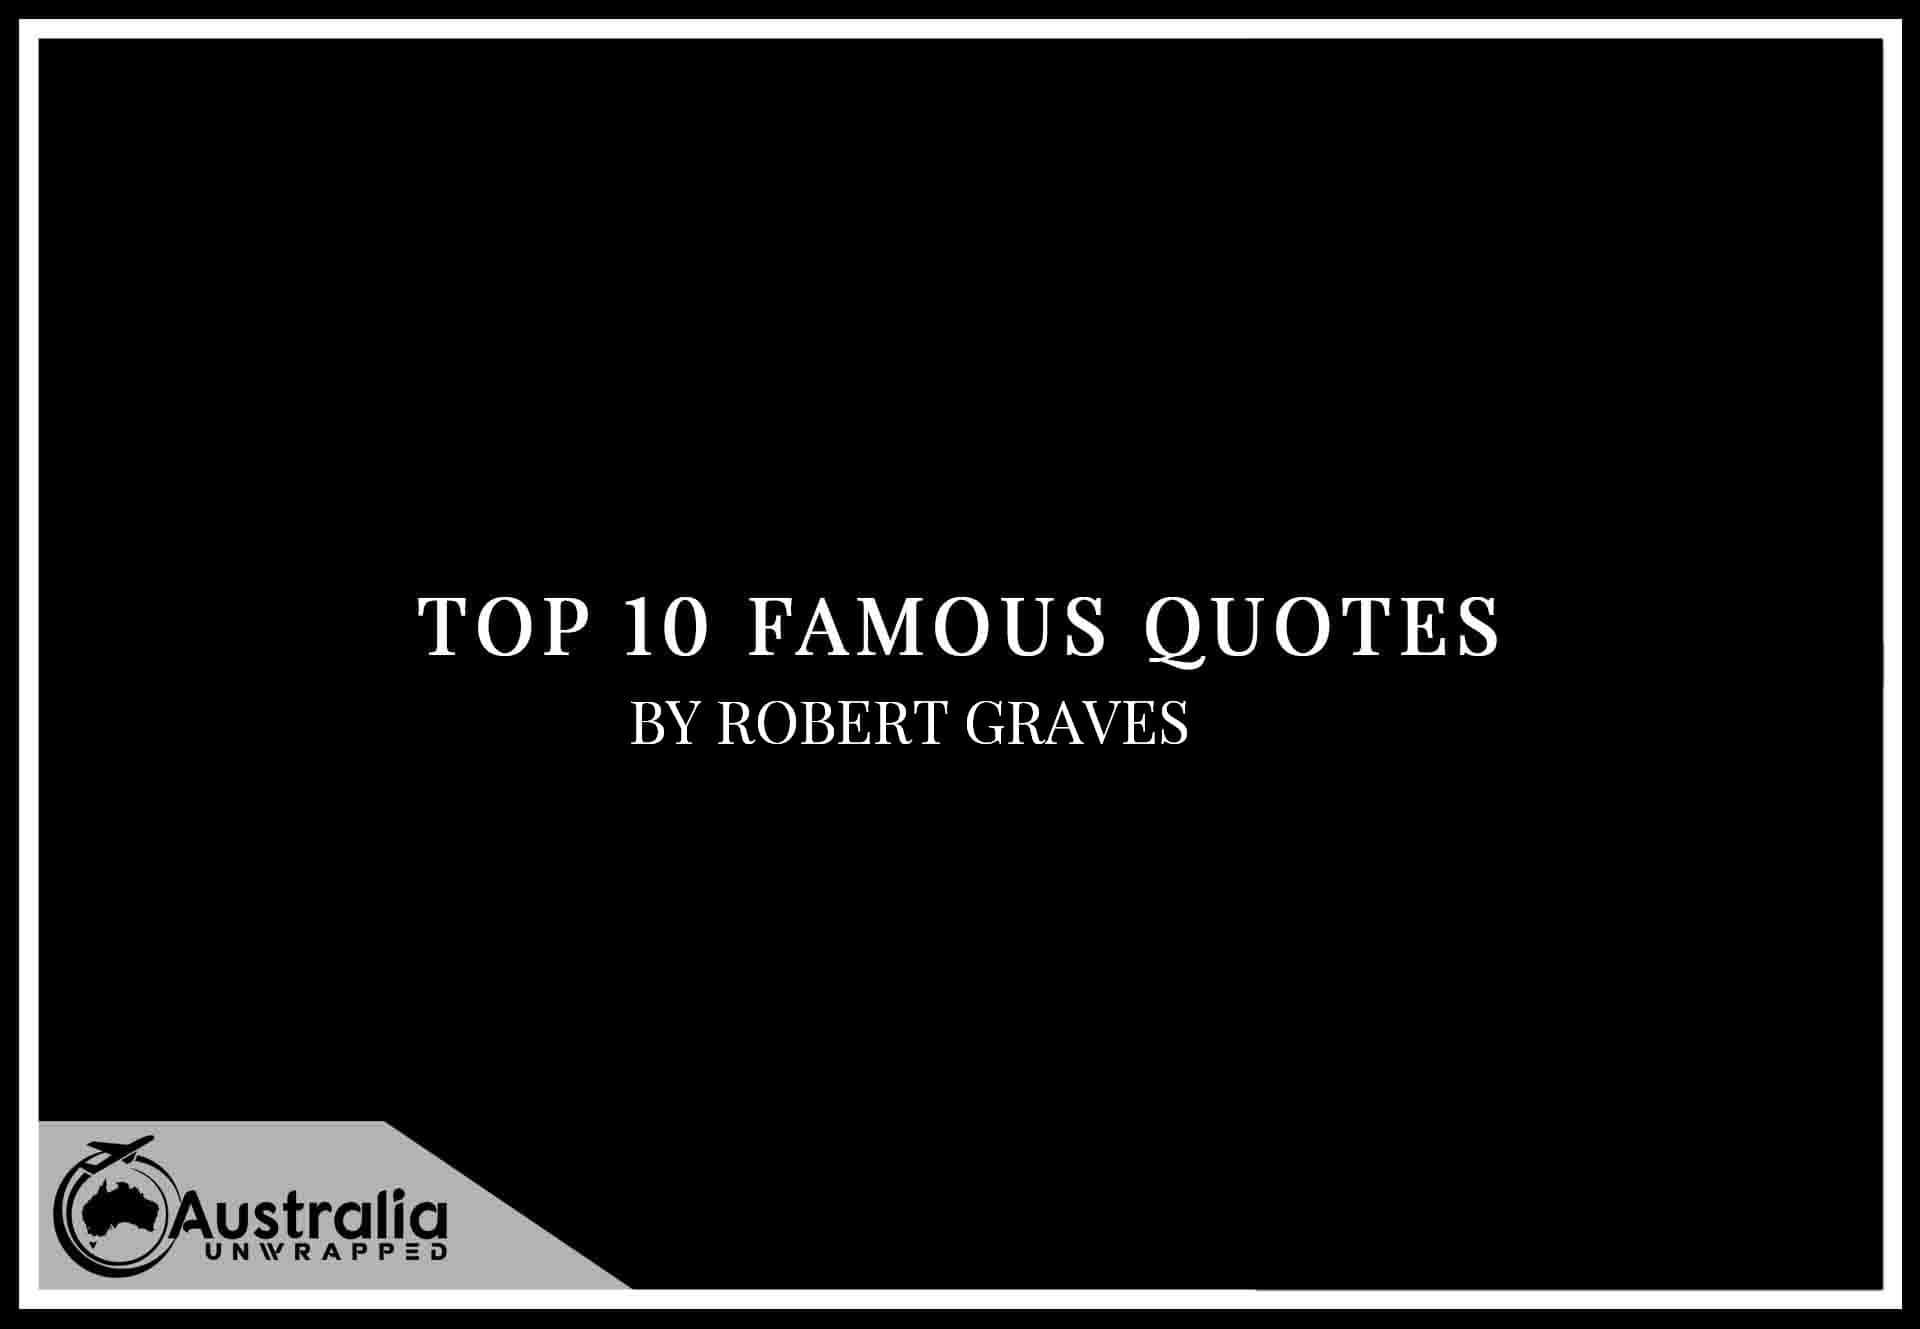 Top 10 Famous Quotes by Author Robert Graves